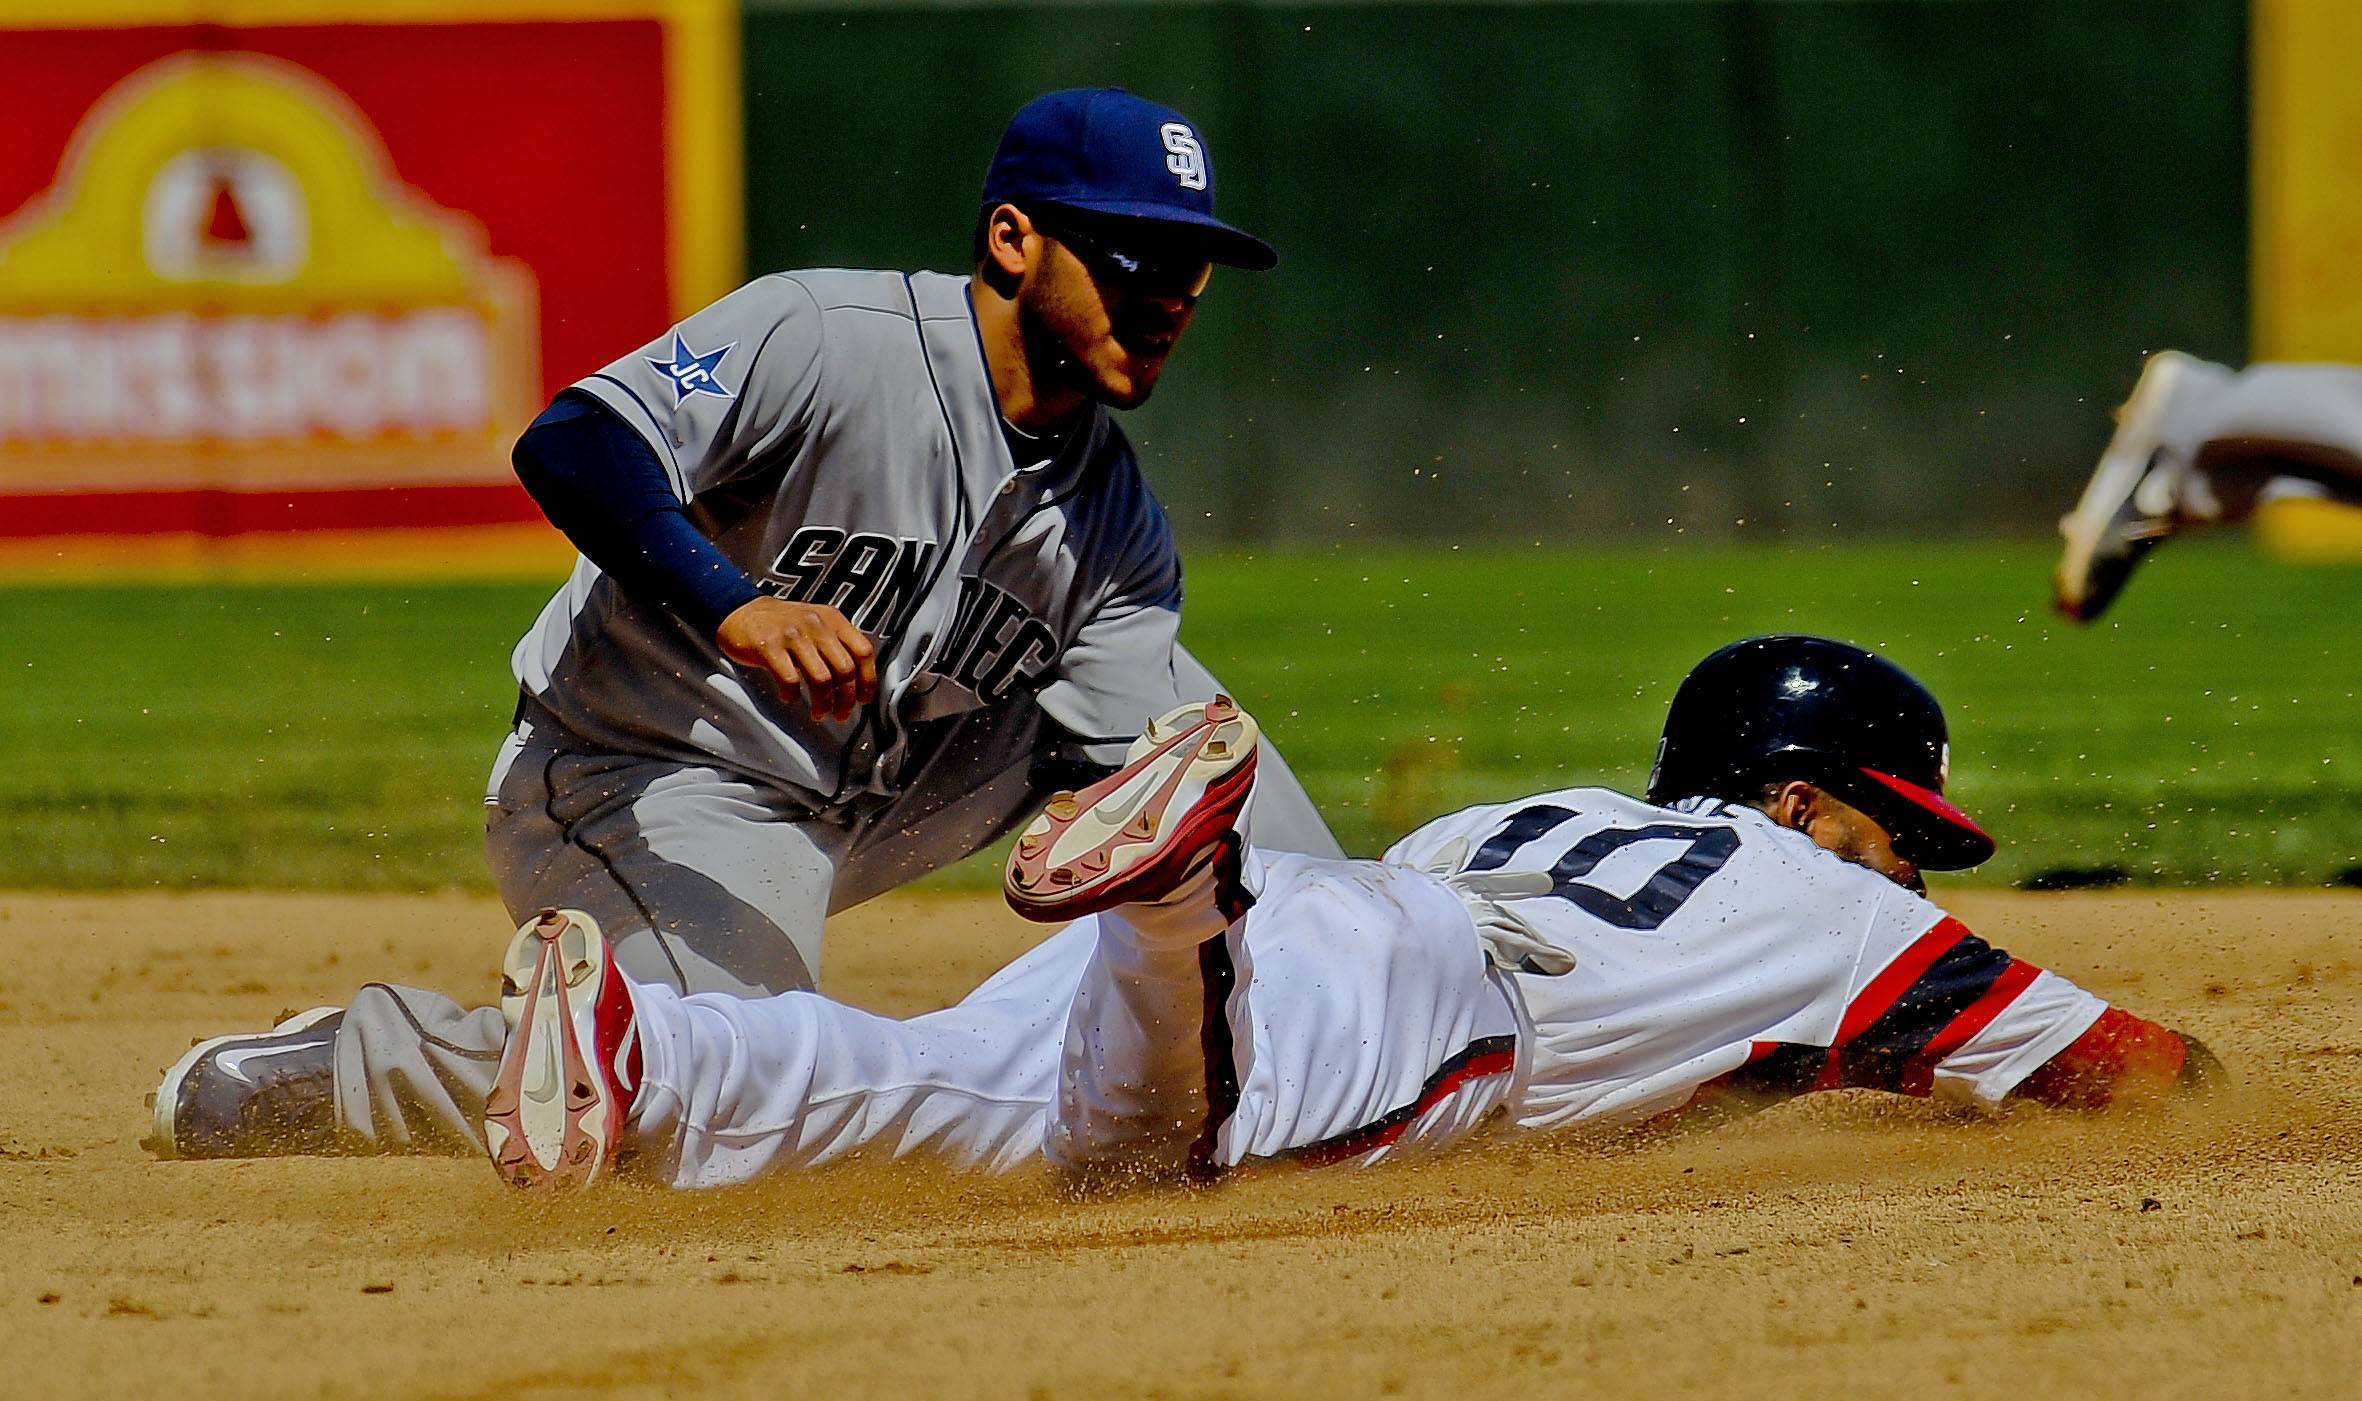 Alexei Ramirez steals second base against the Padres' Alexi Amirista during the fourth inning of Saturday's game at U.S. Cellular Field.